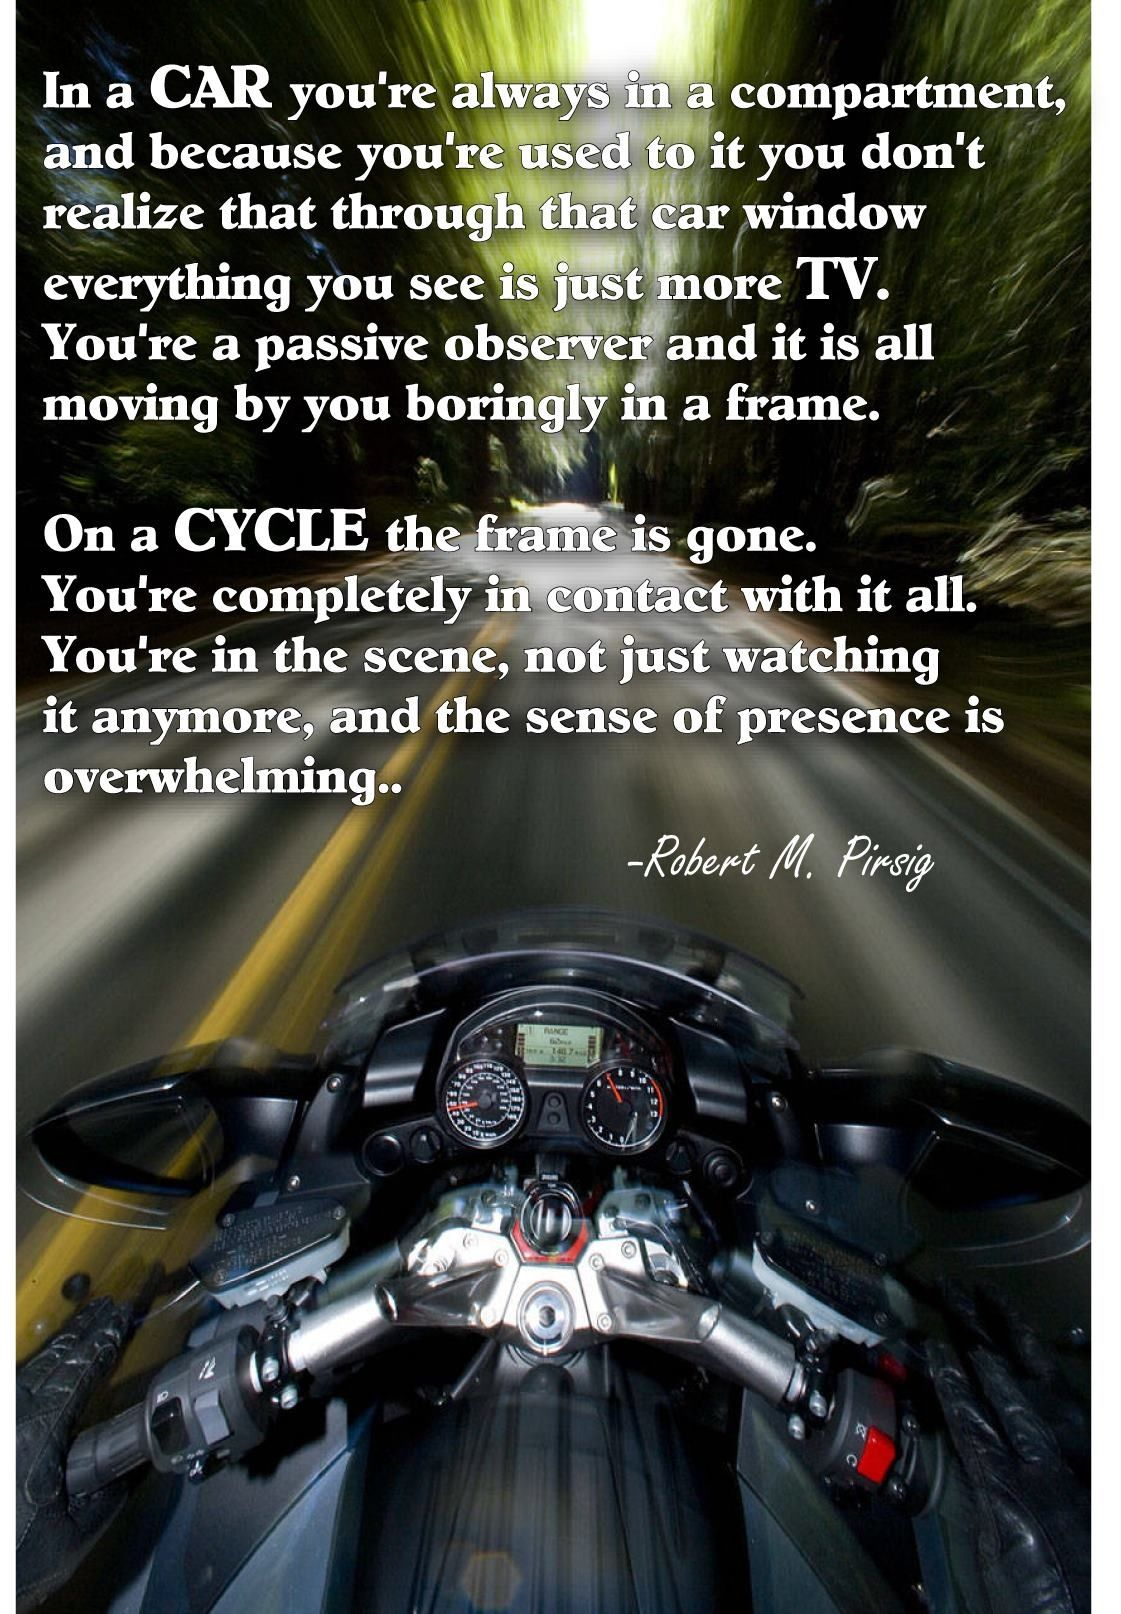 Biker Quotes Top 100 BEST Biker Quotes and Sayin's